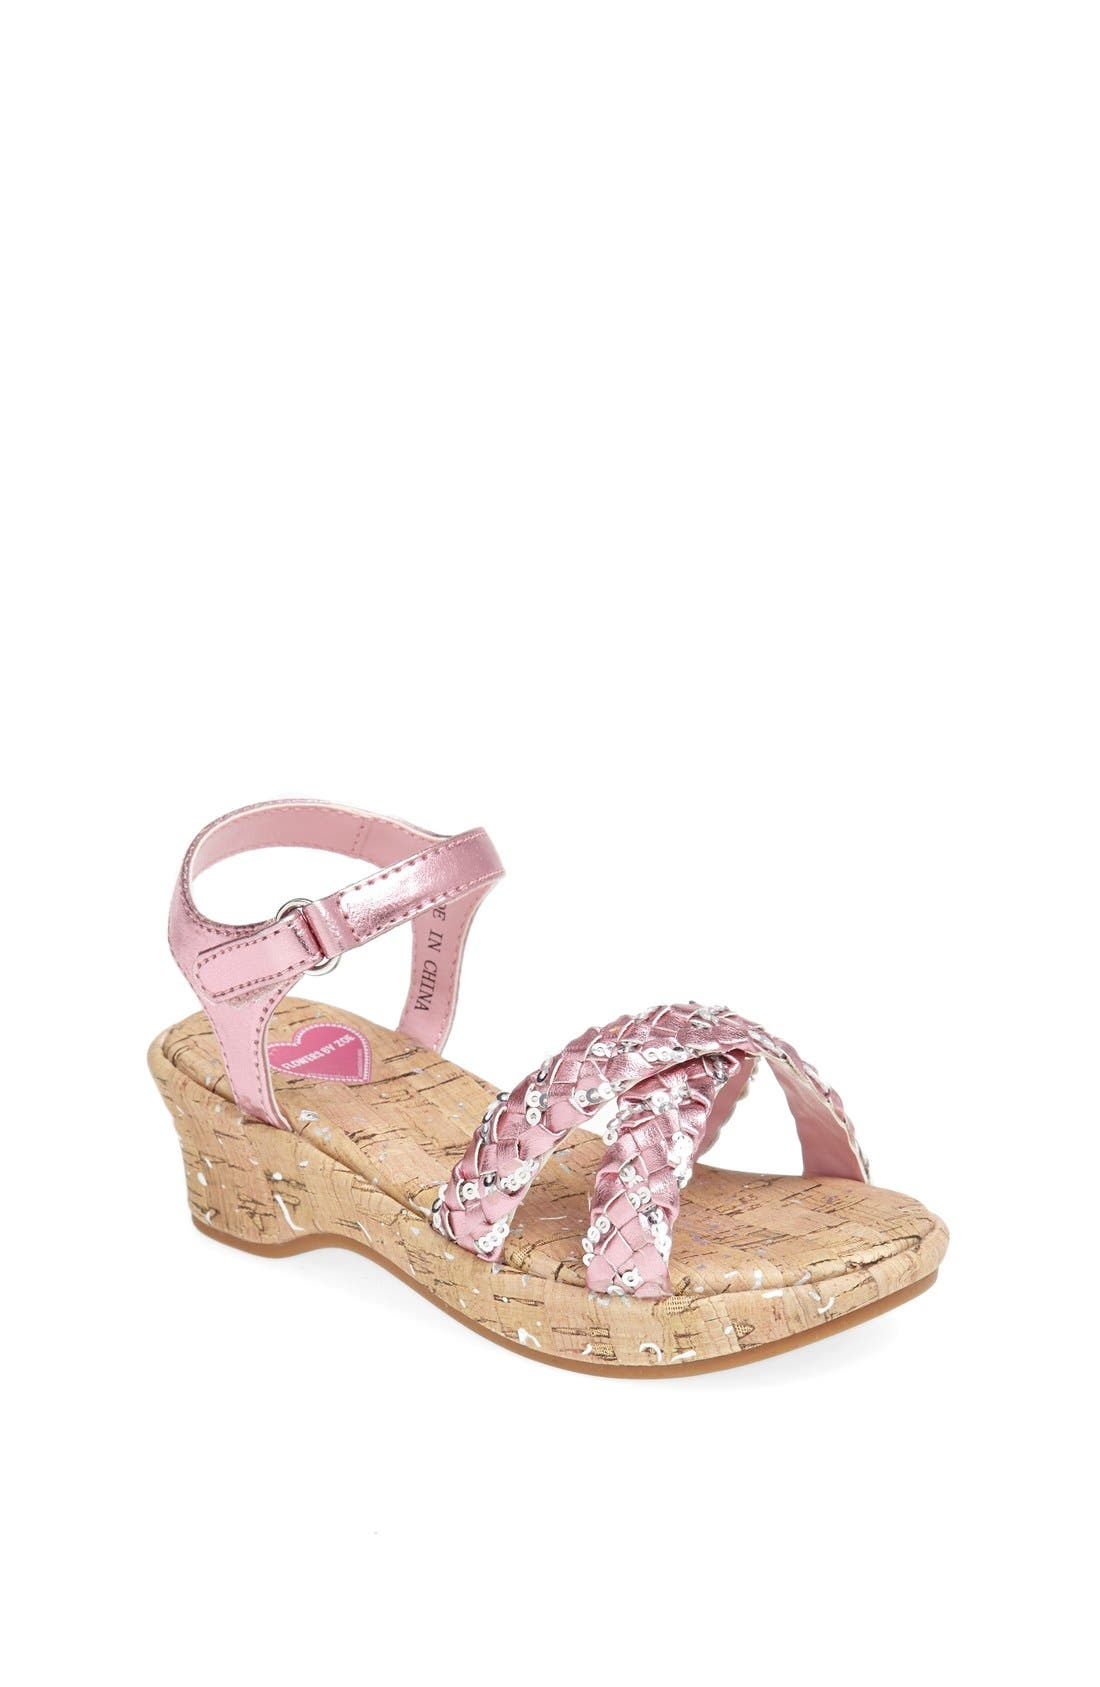 Main Image - Flowers by Zoe 'Brenda' Wedge Sandal (Toddler)